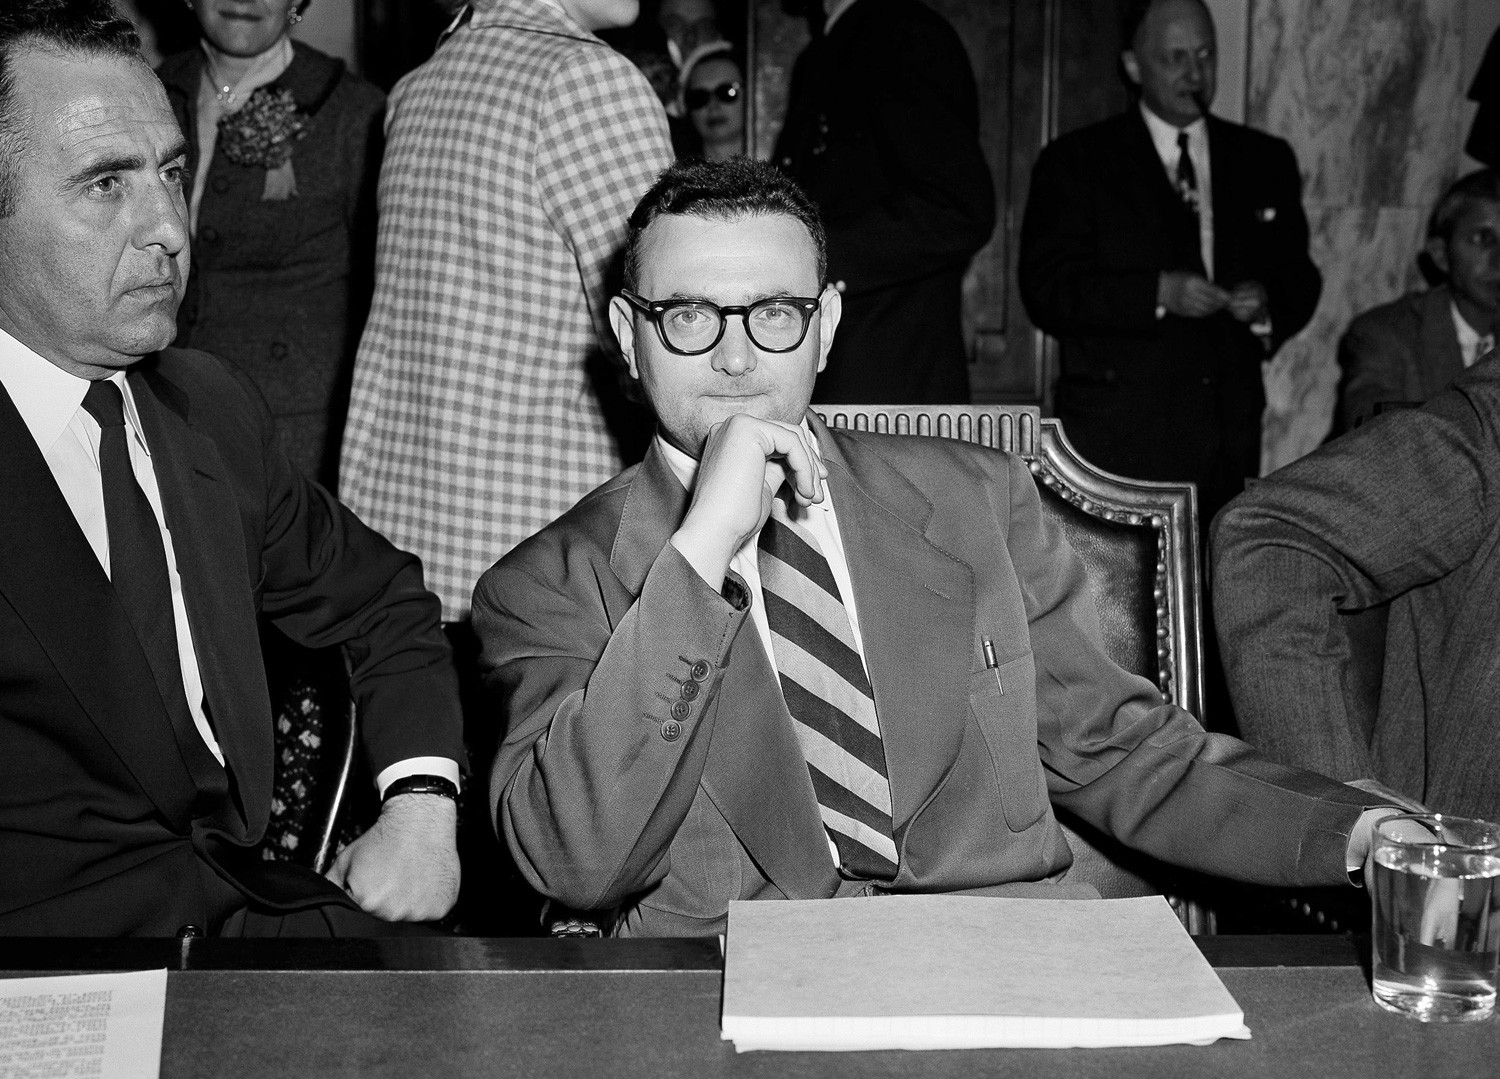 David Greenglass, convicted atomic spy, who testified against his sister Ethel Rosenberg and her husband Julius.